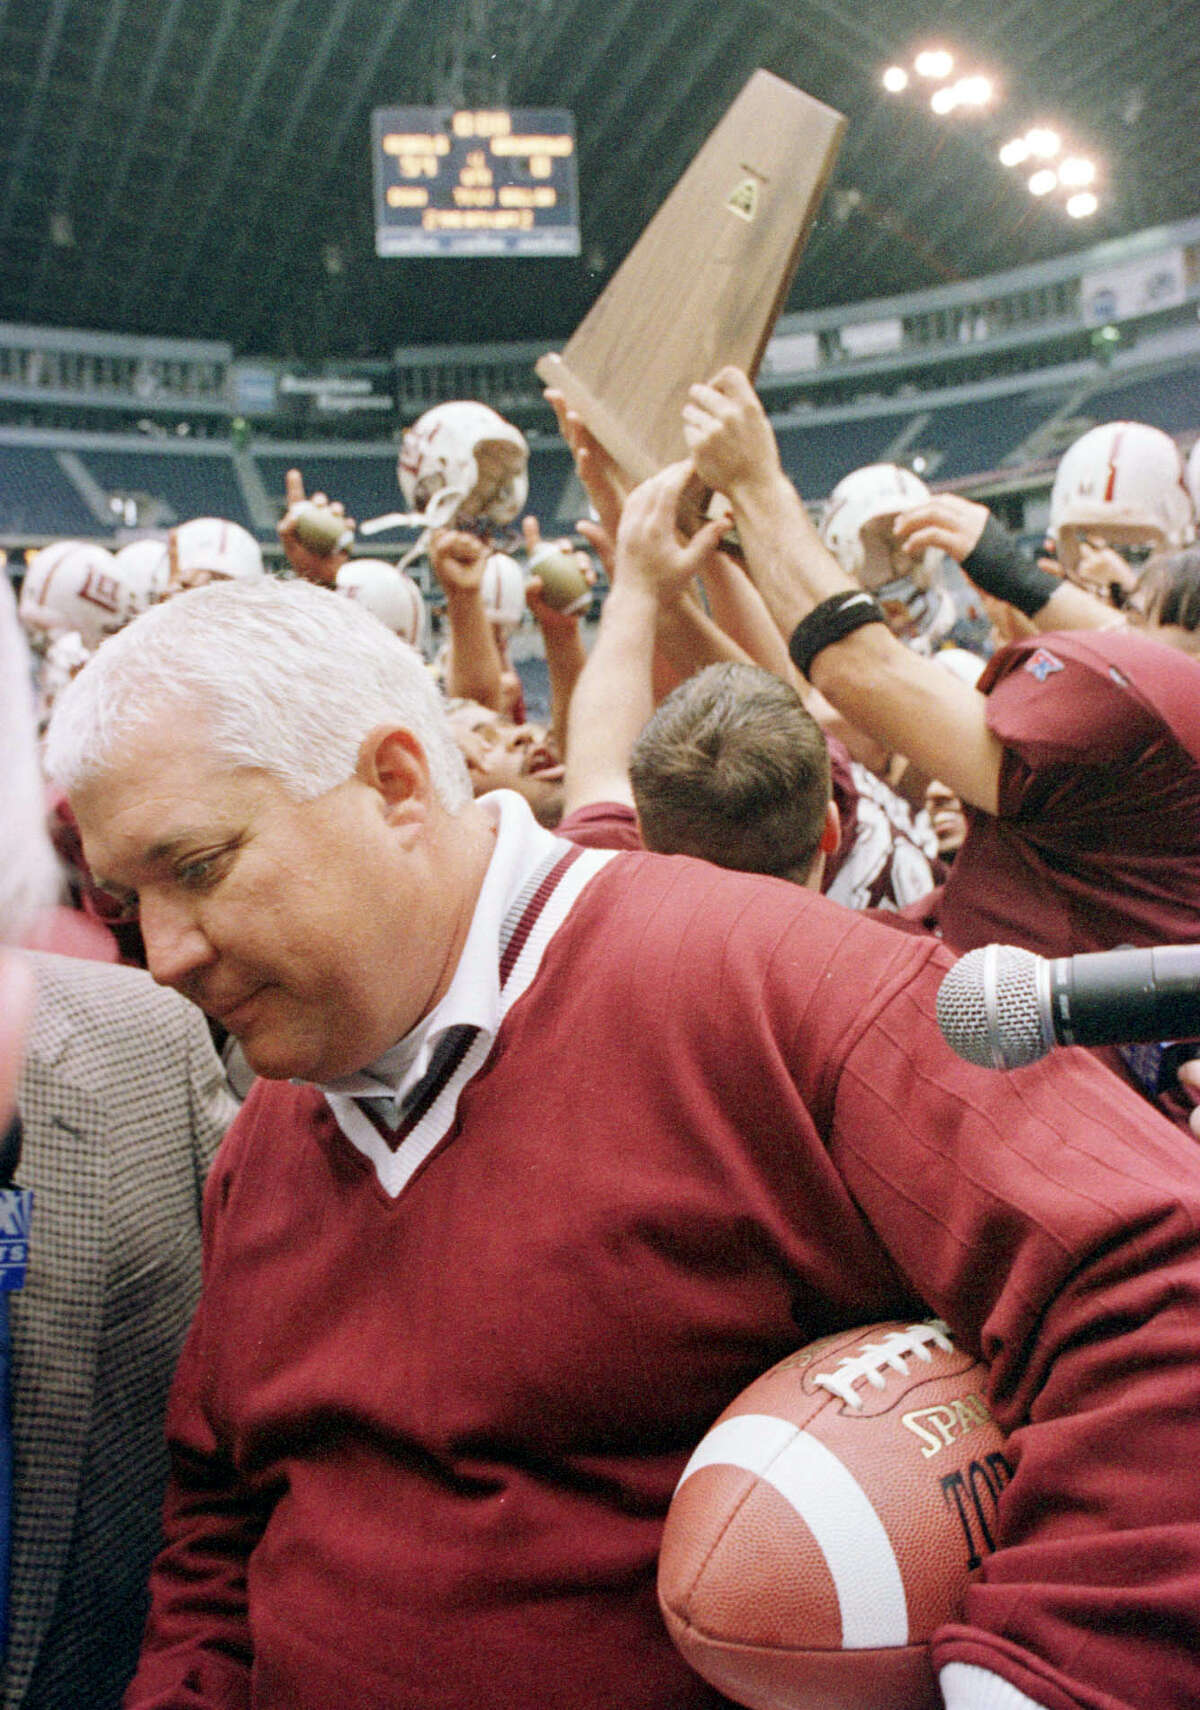 In Texas Stadium in Dallas Saturday Dec. 19, 1998, Midland Lee High School head football coach John Parchman is seen in the victory circle after defeating San Antonio's MacArthur High School . HOUCHRON CAPTION (04/29/2001): John Edd Parchman - in the victory circle after Midland Lee High School's football team defeated San Antonio's MacArthur High School in December 1998 - is an example of the kid-sensitive type of coach.